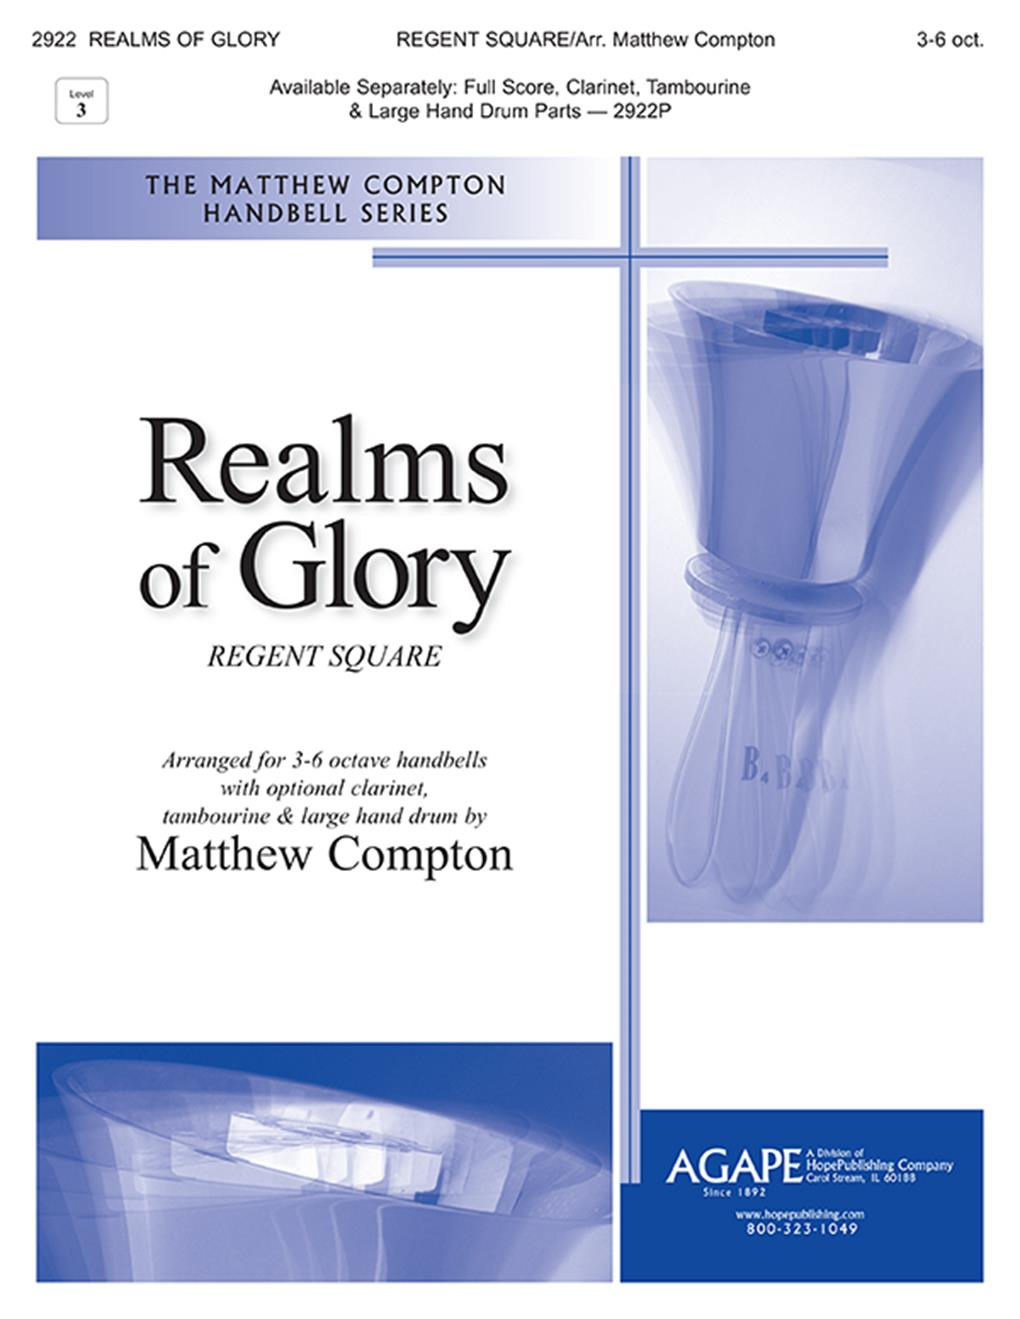 Realms of Glory - 3-5 Oct. Cover Image